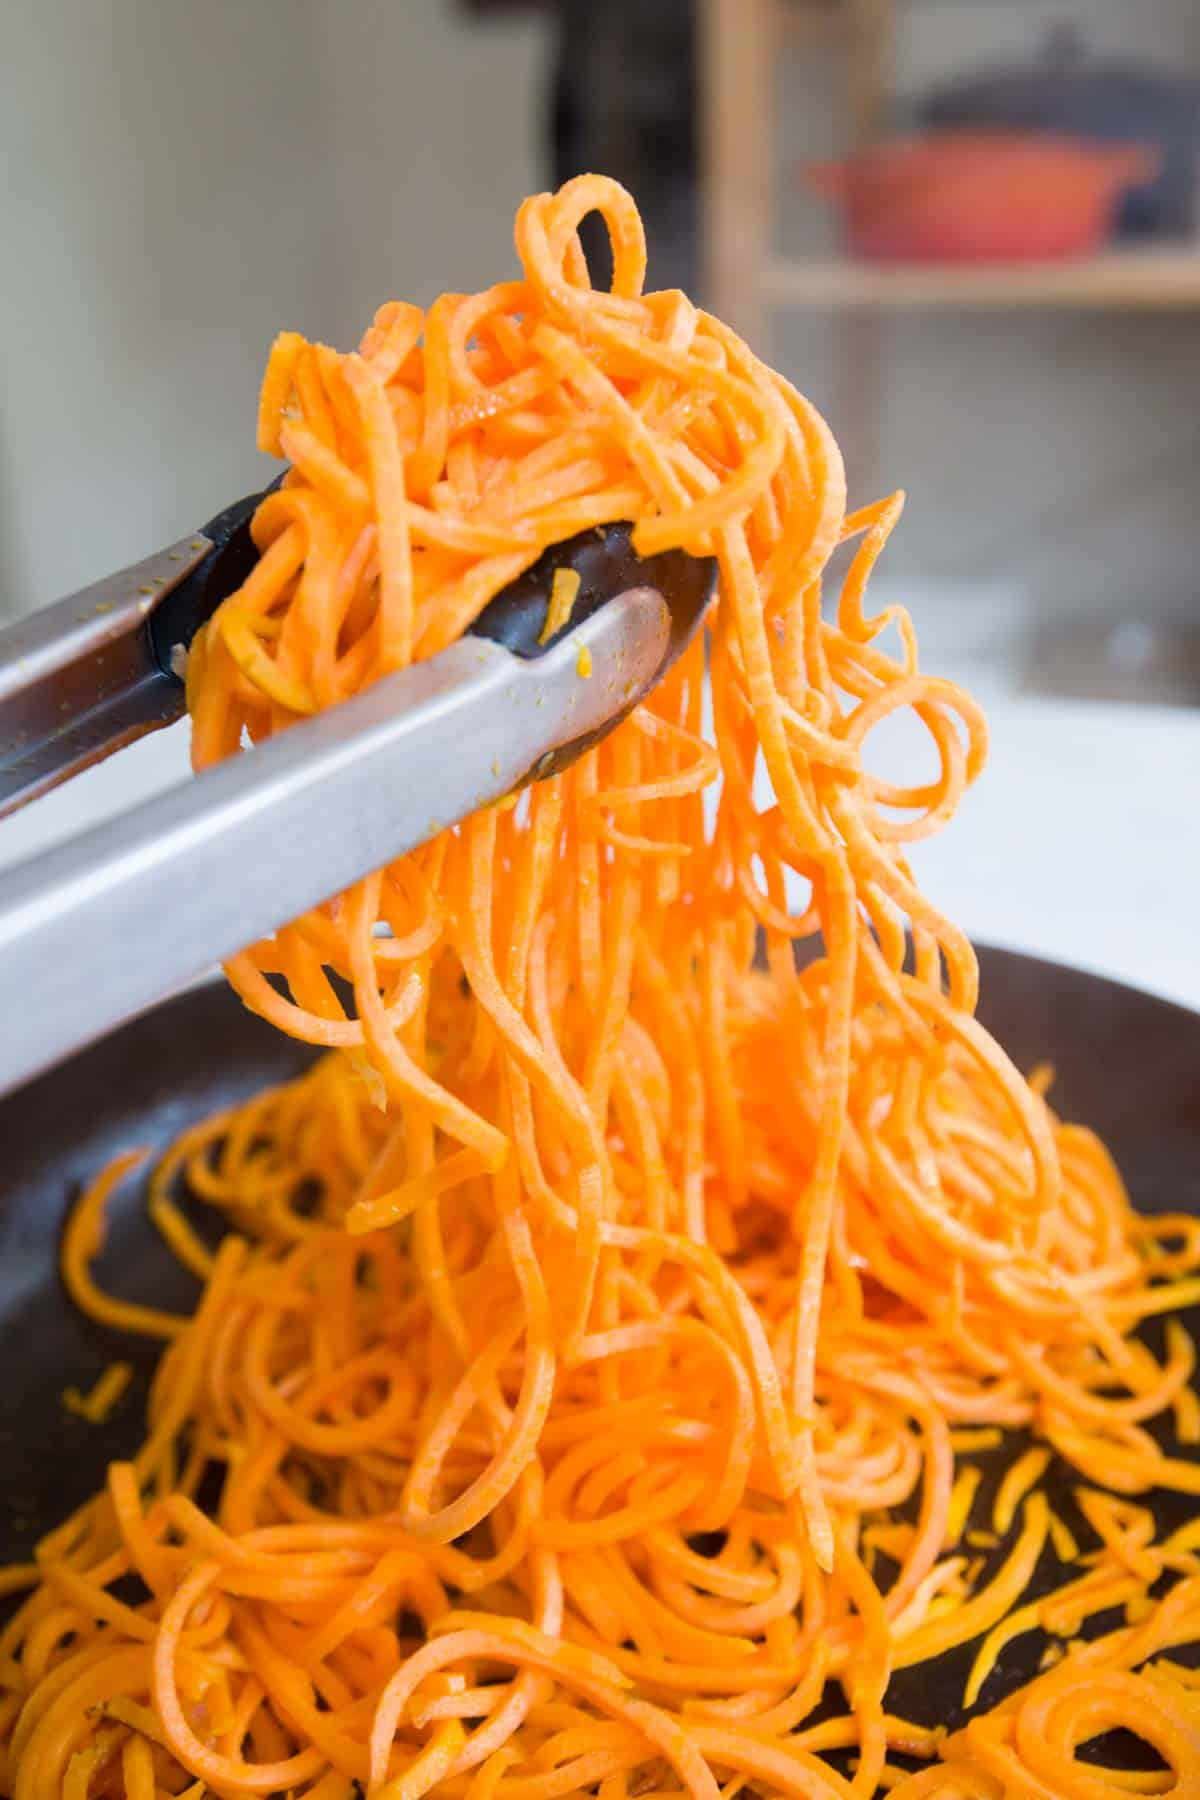 How to Cook Sweet Potato Noodles